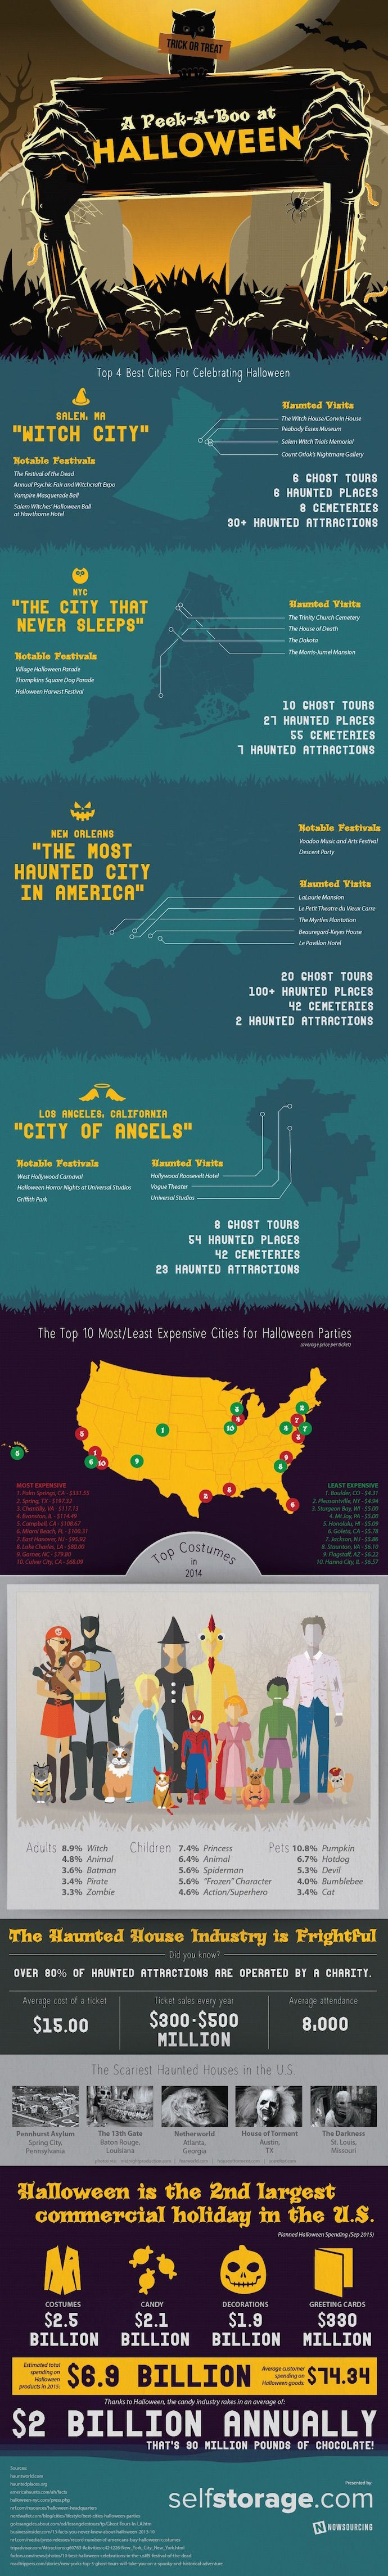 Do You Know Everything About Halloween? | Graphics Pedia